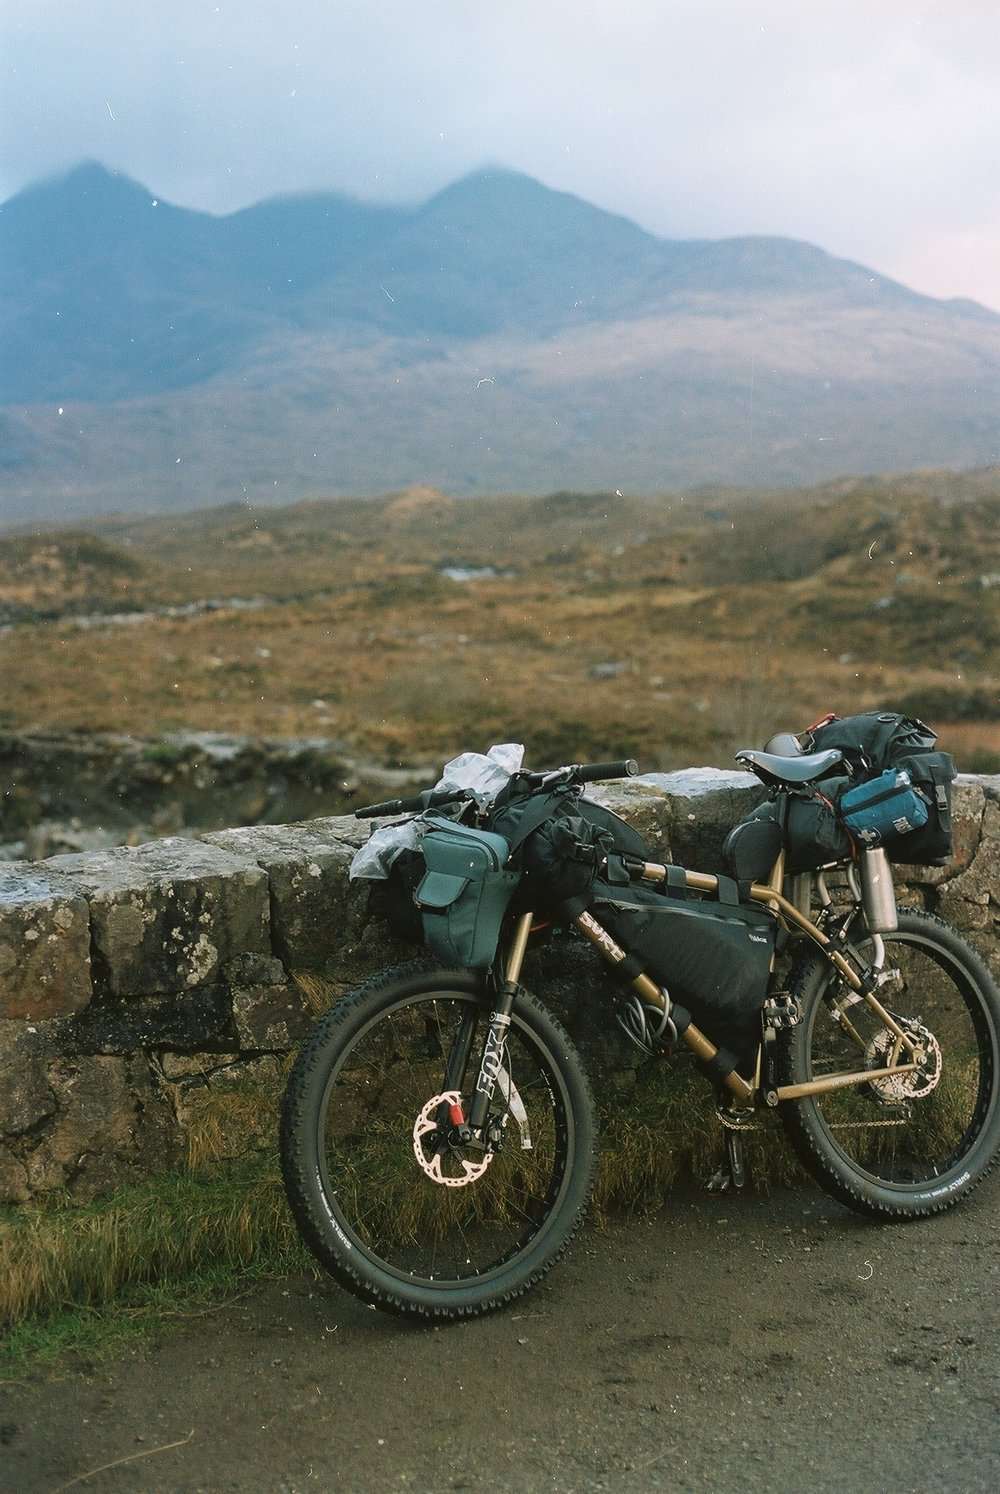 canon, canon ae1, kodak, kodak portra, film, film photography, bikepacking, bikepacking blog, surly, surly instigator, instigator, instigator 2.0, FOX, wildcat gear, carradice, jack macgowan, explorer, bicycle touring, bicycle touring blog, professional explorer, klean kanteen, 35mm, film, film is not dead, leica, canon, canon ae1, brooks, brooks saddles, dirt wizard, dirt wizard tyres, thule, thule bike rack, fat bike, surly, surly bikes, travel writer, revelate designs,